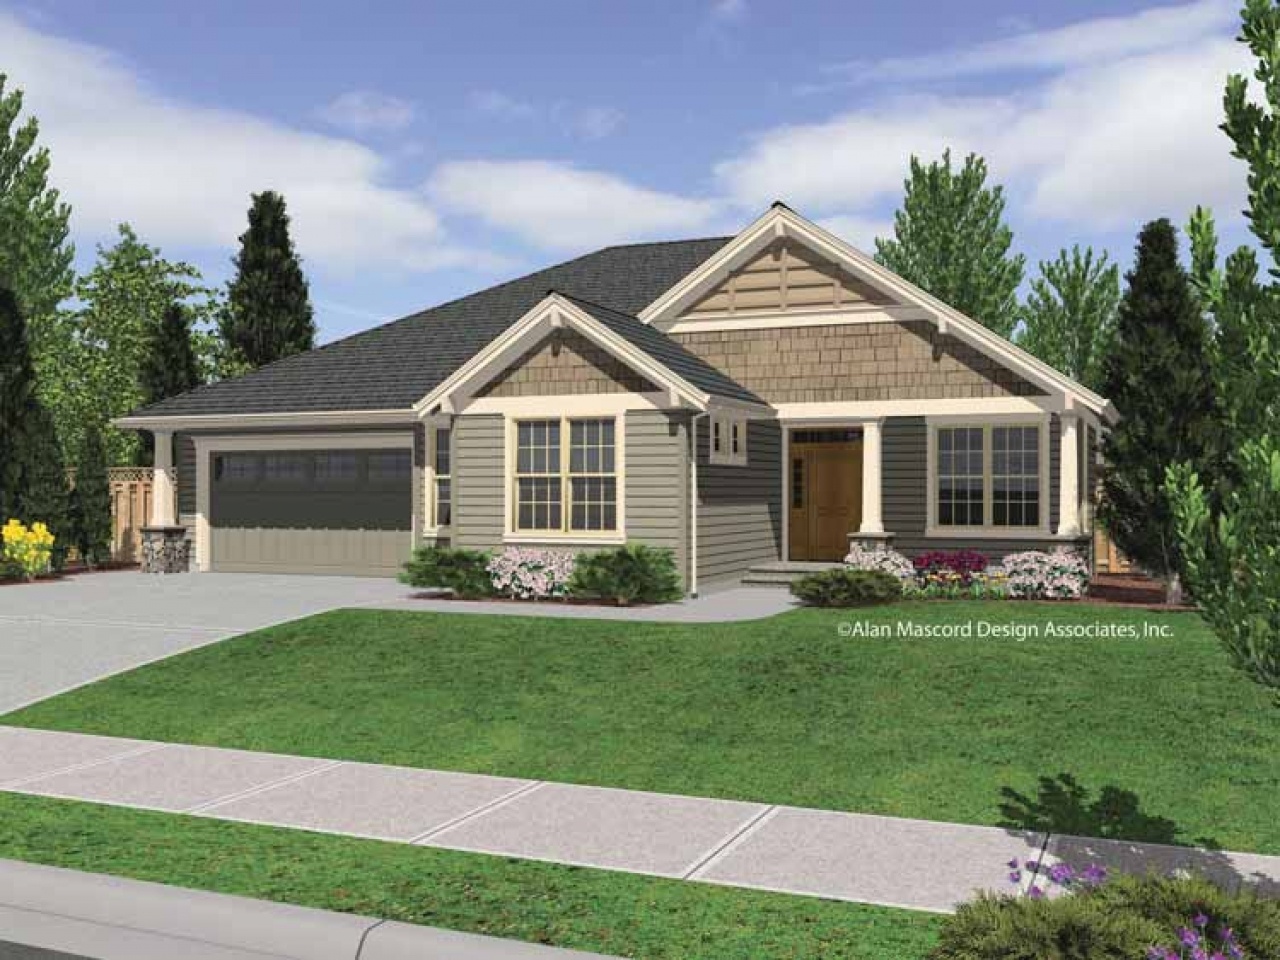 small single story house plans small house plans craftsman bungalow single story craftsman home plans home plans single story 130